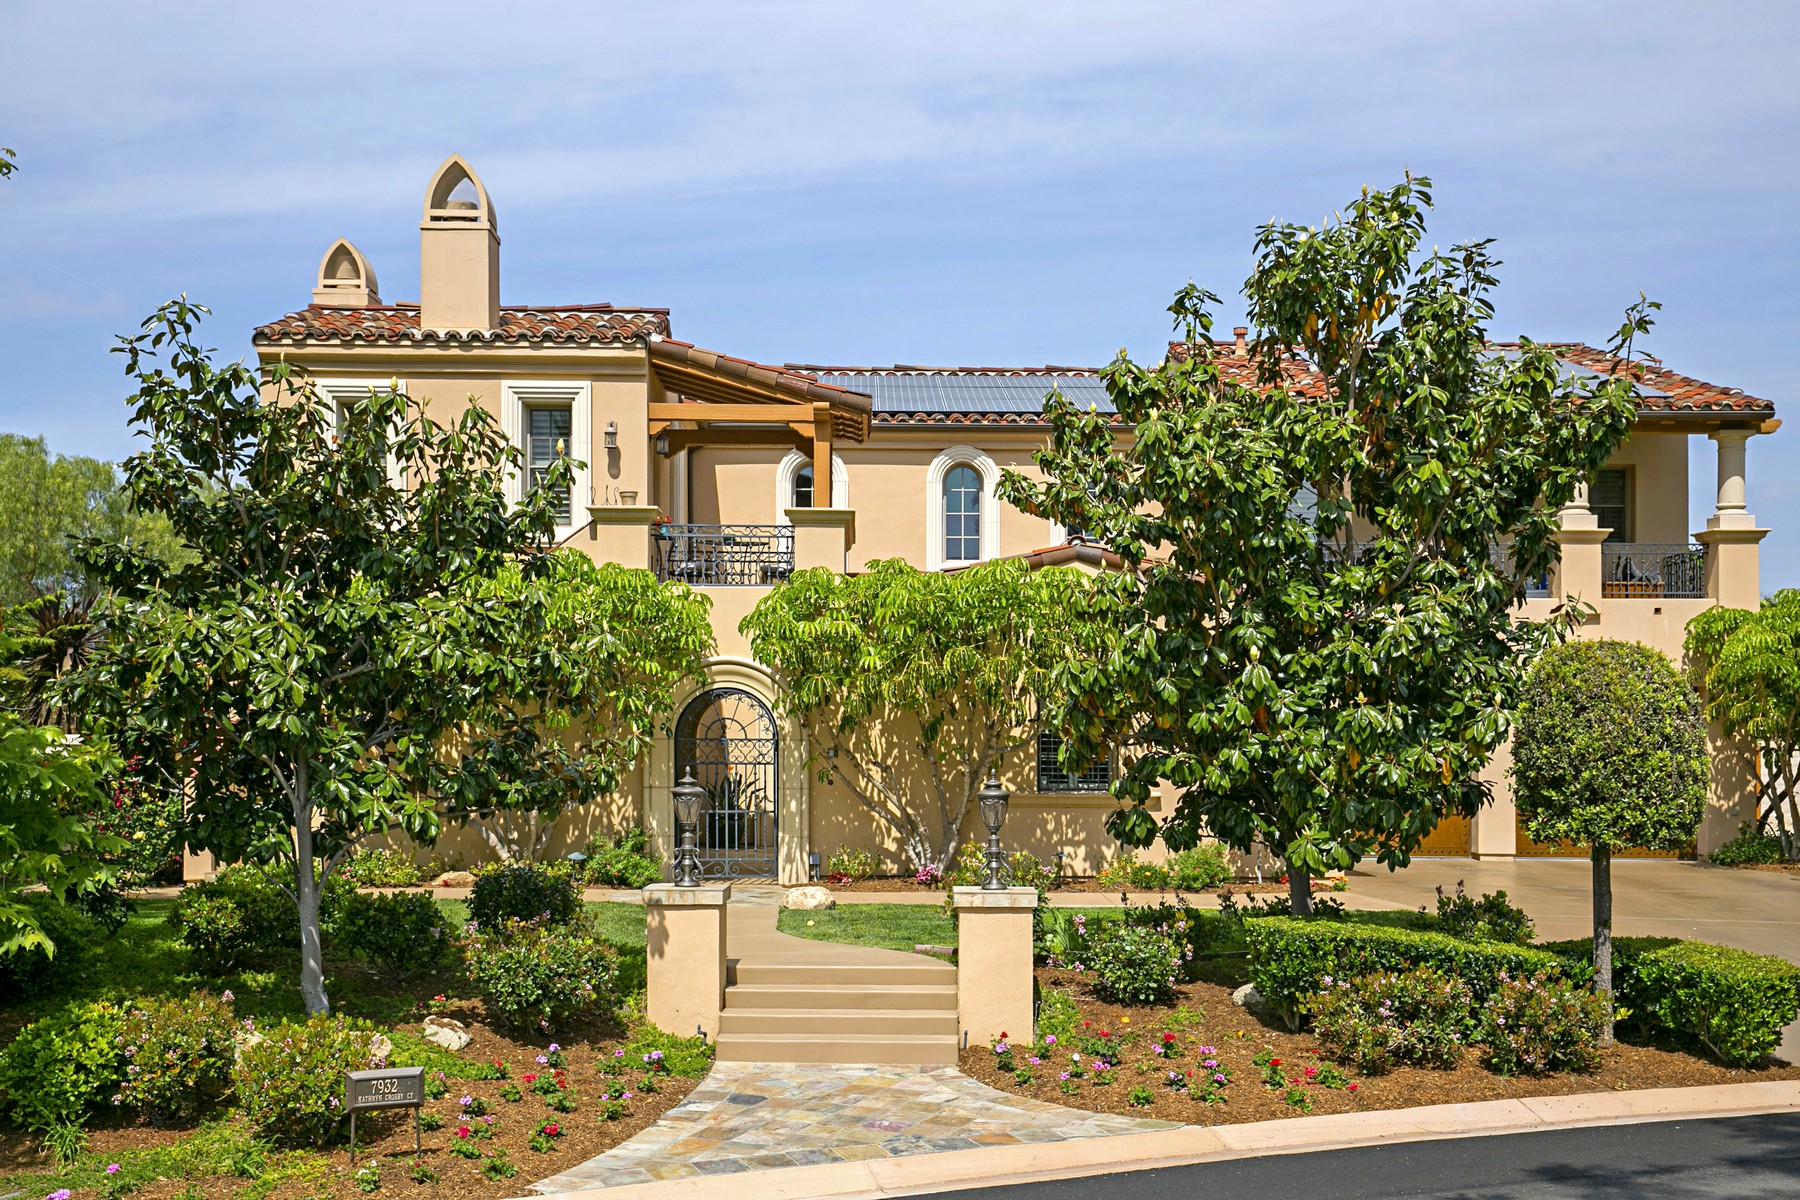 Casa Unifamiliar por un Venta en The Links at The Crosby in Rancho Santa Fe! 7932 Kathryn Crosby Ct. Rancho Santa Fe, California, 92127 Estados Unidos